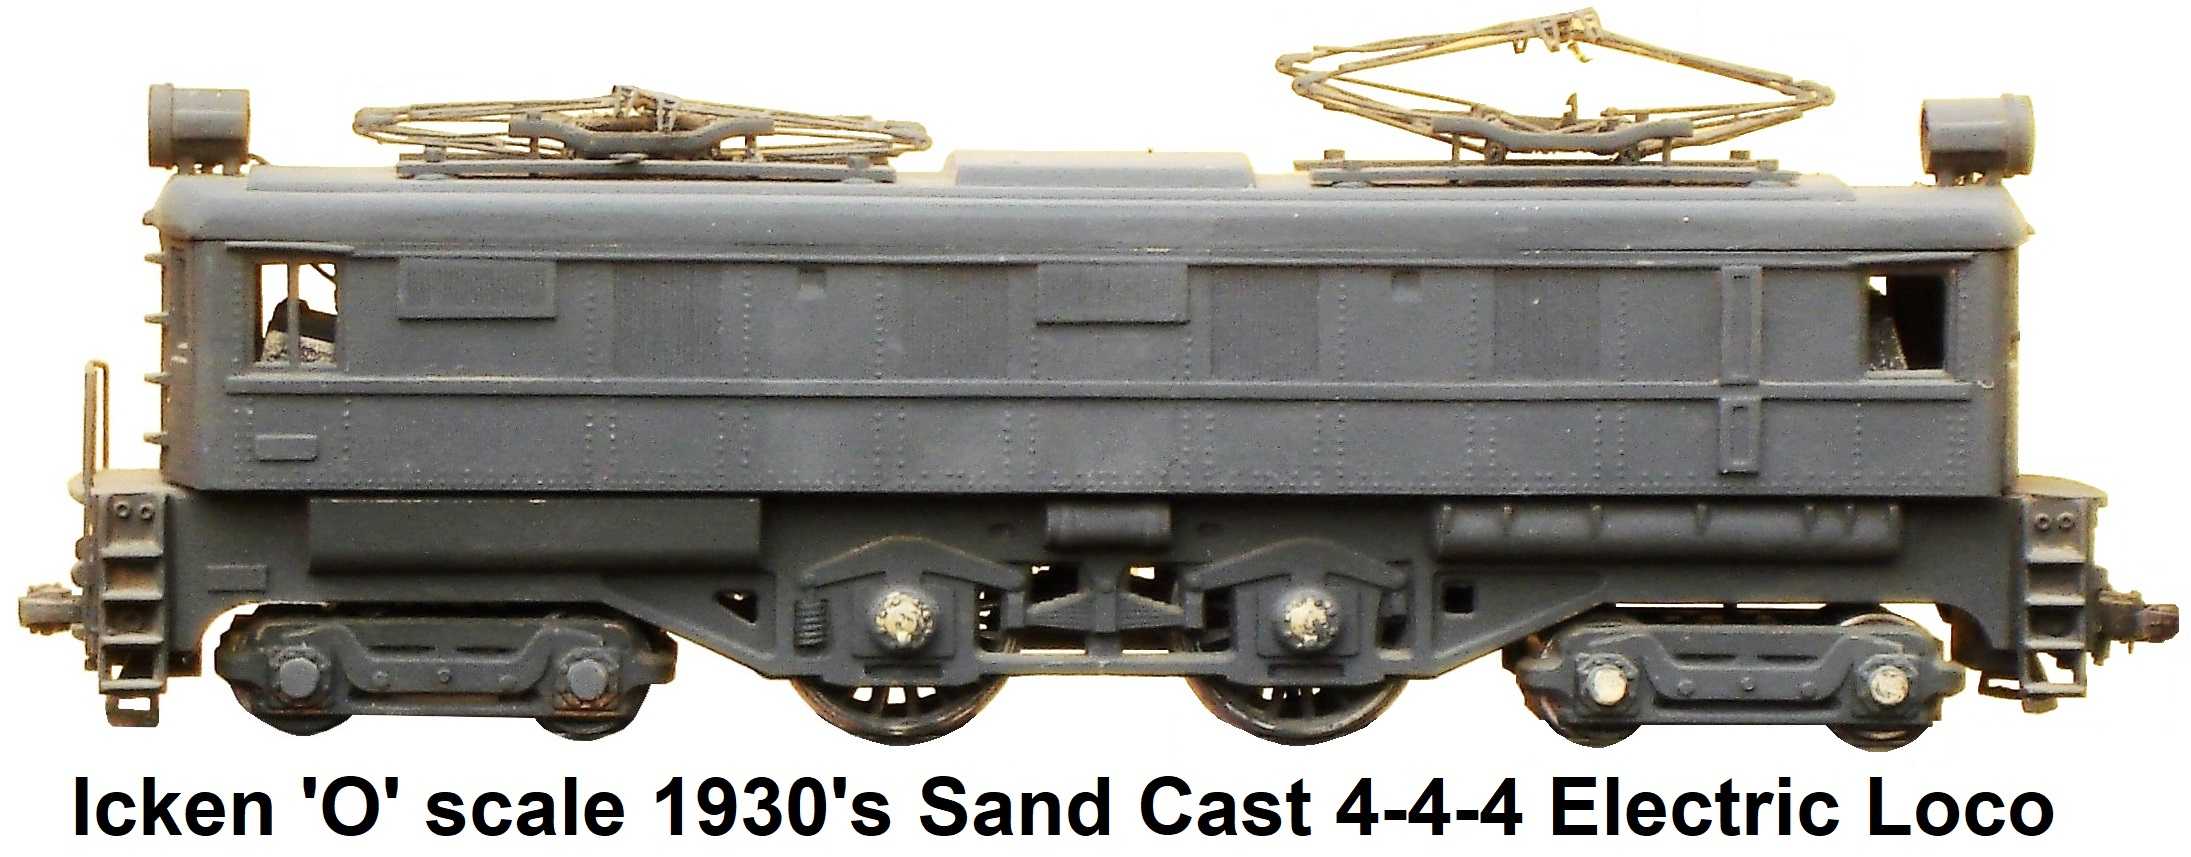 Icken 'O' scale 4-4-4 French Sand Cast Electric loco circa 1930's